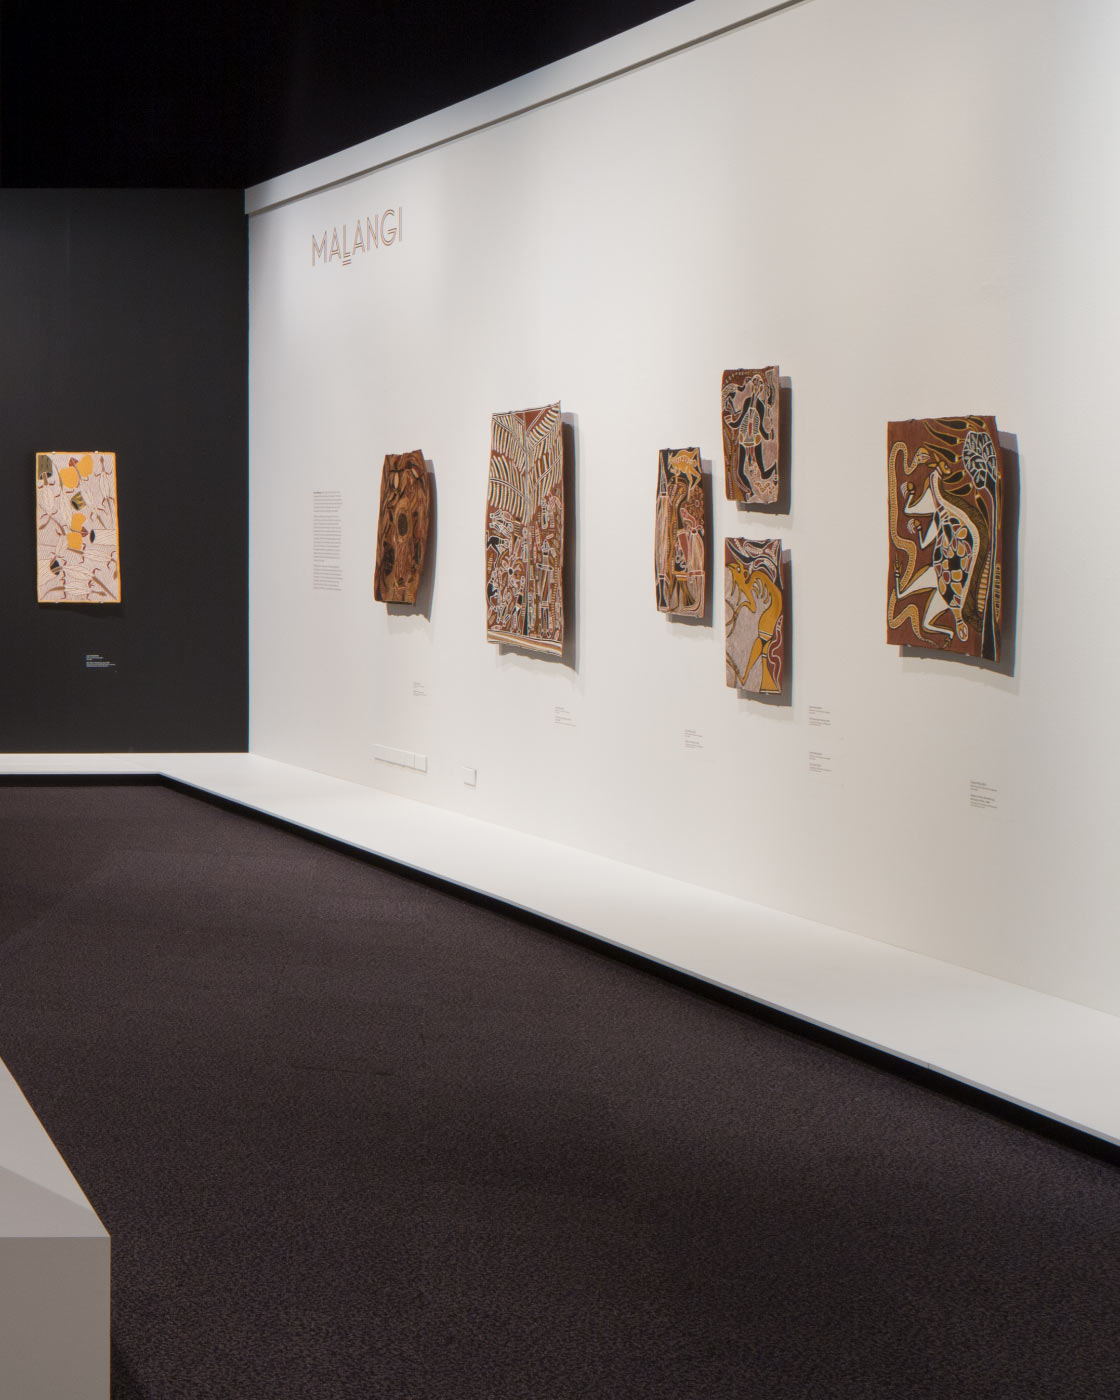 Exhibition space featuring bark paintings mounted on walls.